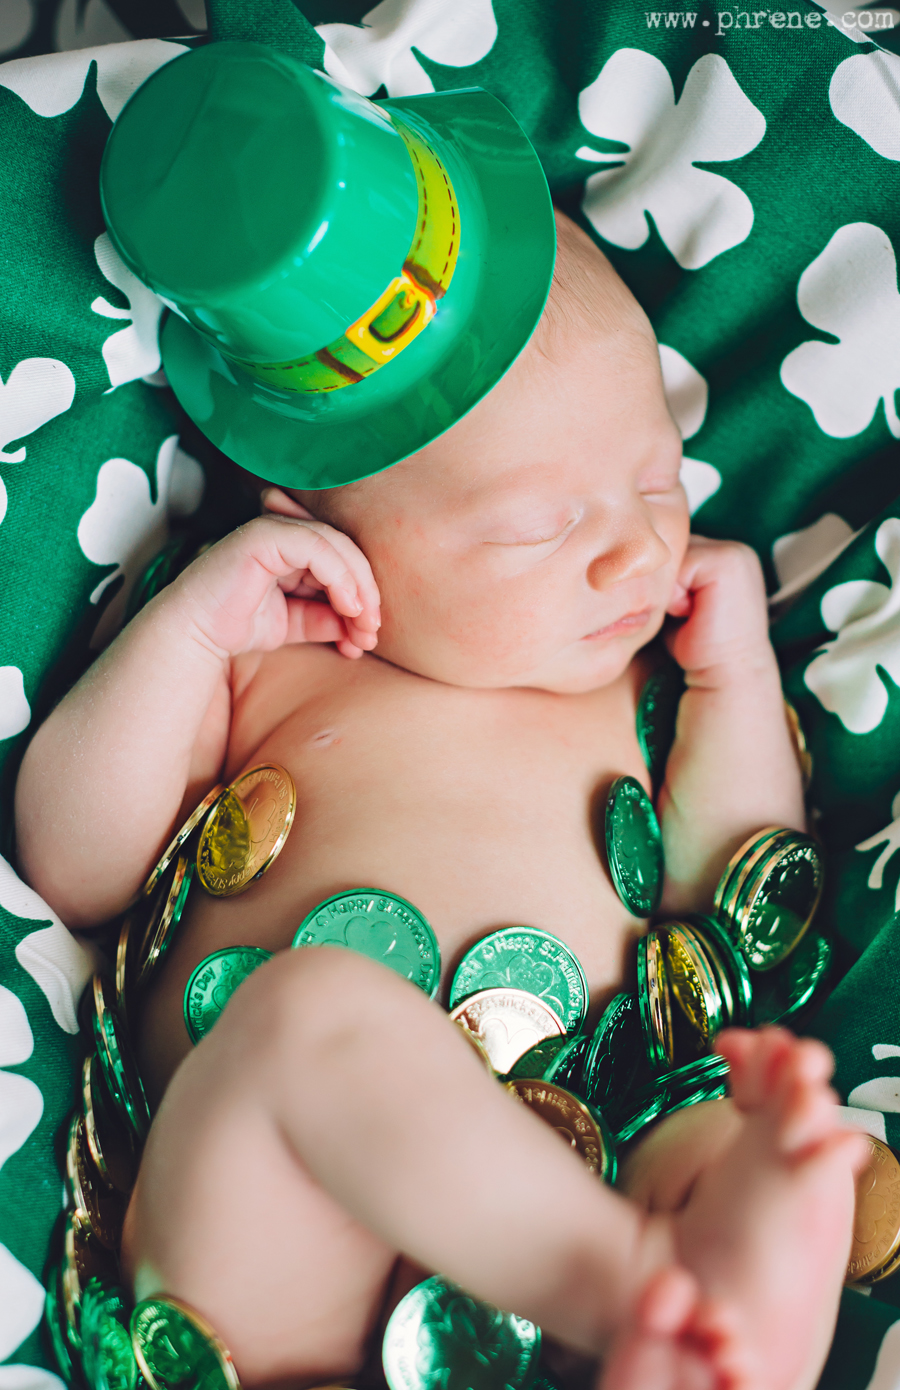 st-patricks-day-newborn-photography03